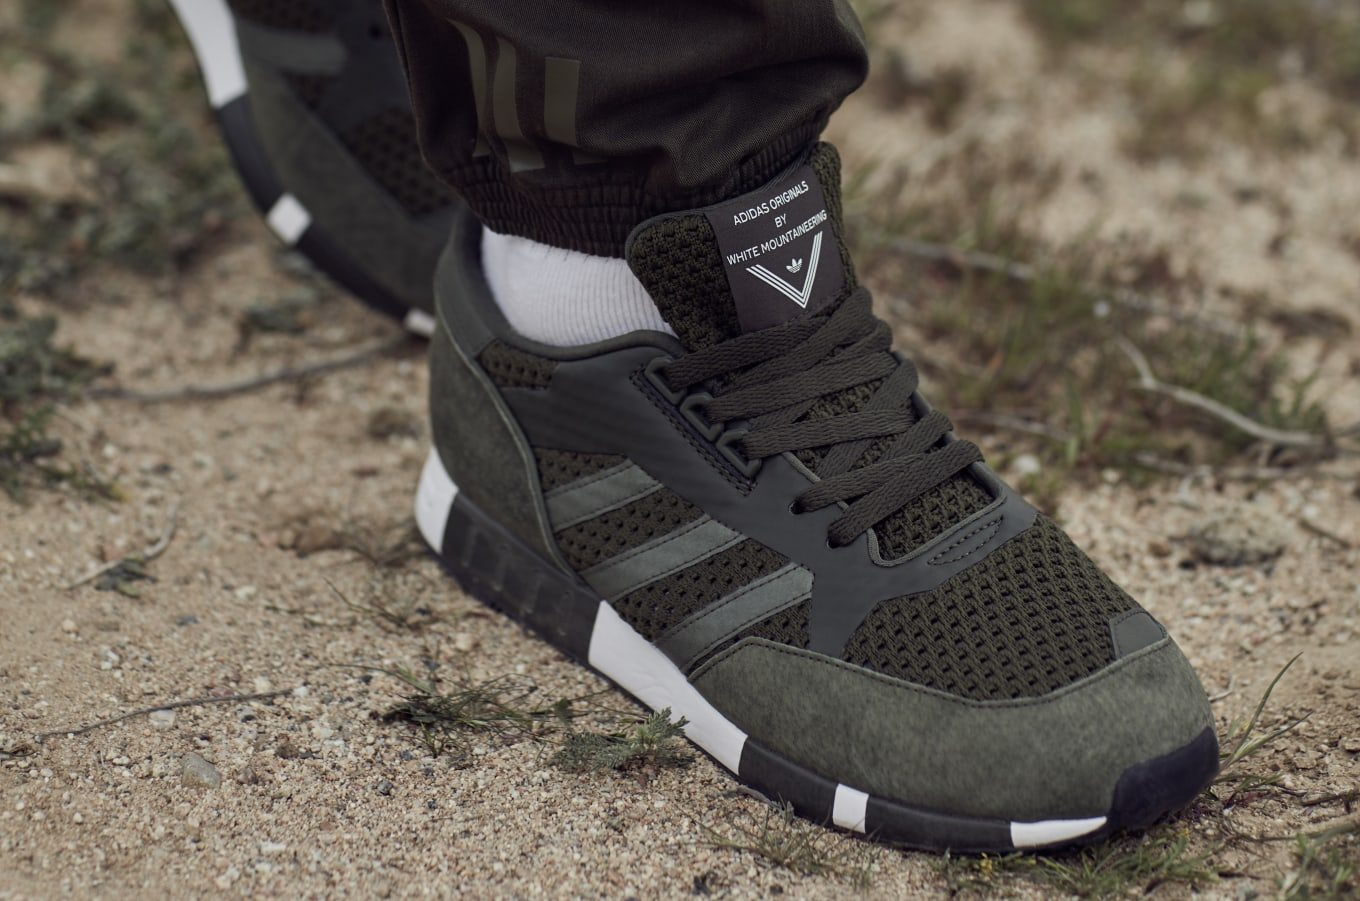 online retailer a05c3 4d1d1 Adidas and White Mountaineering Reunite for Sneakers, Apparel